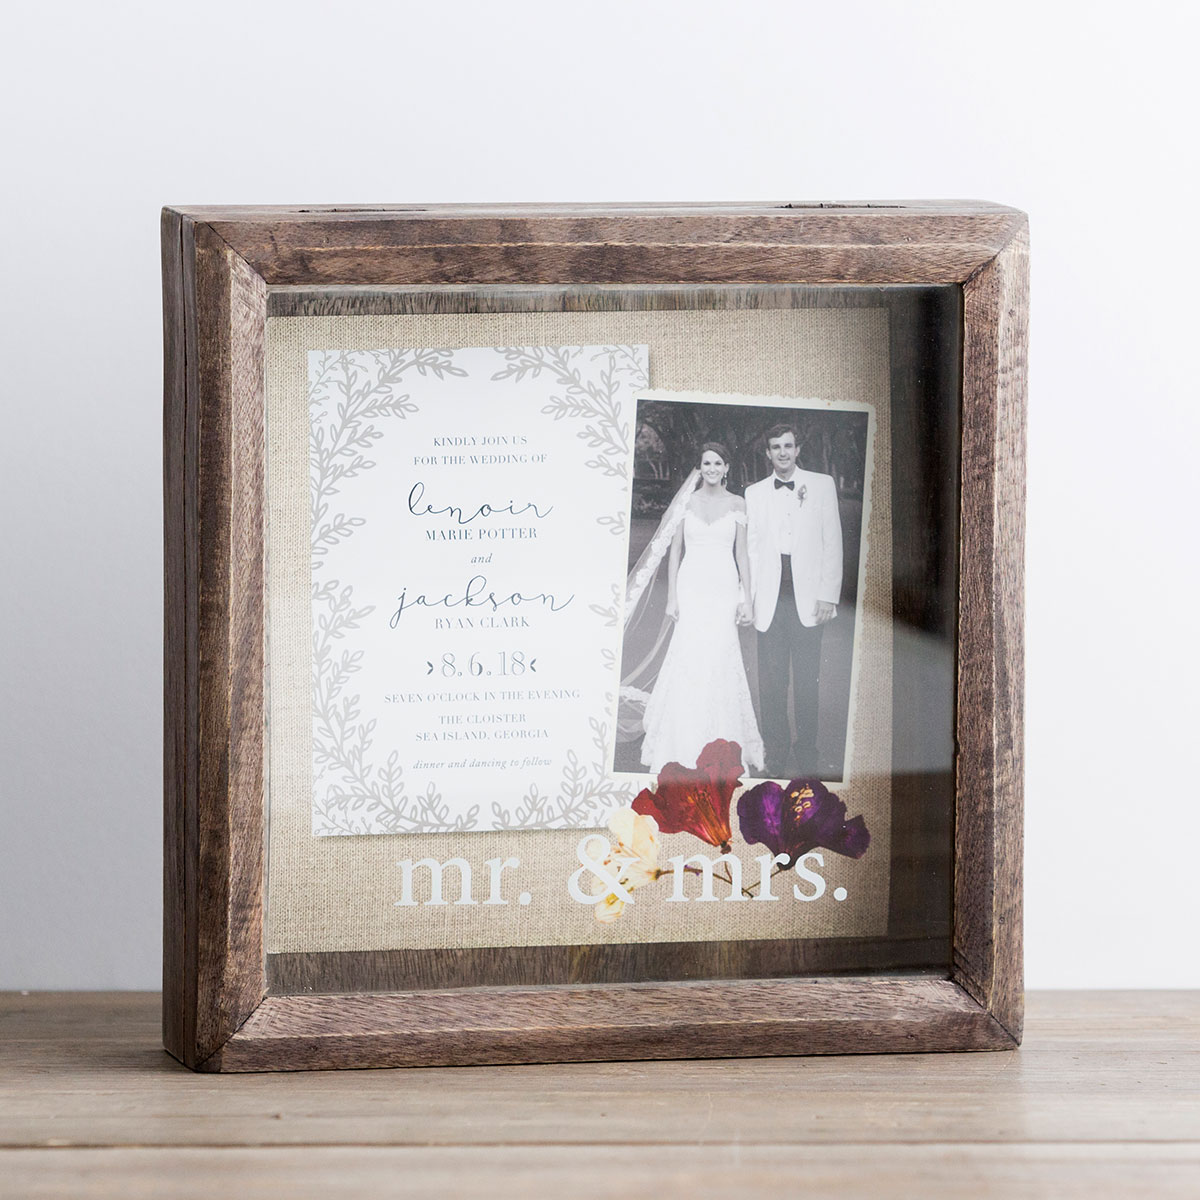 Mr. & Mrs. - Wooden Keepsake Shadow Box